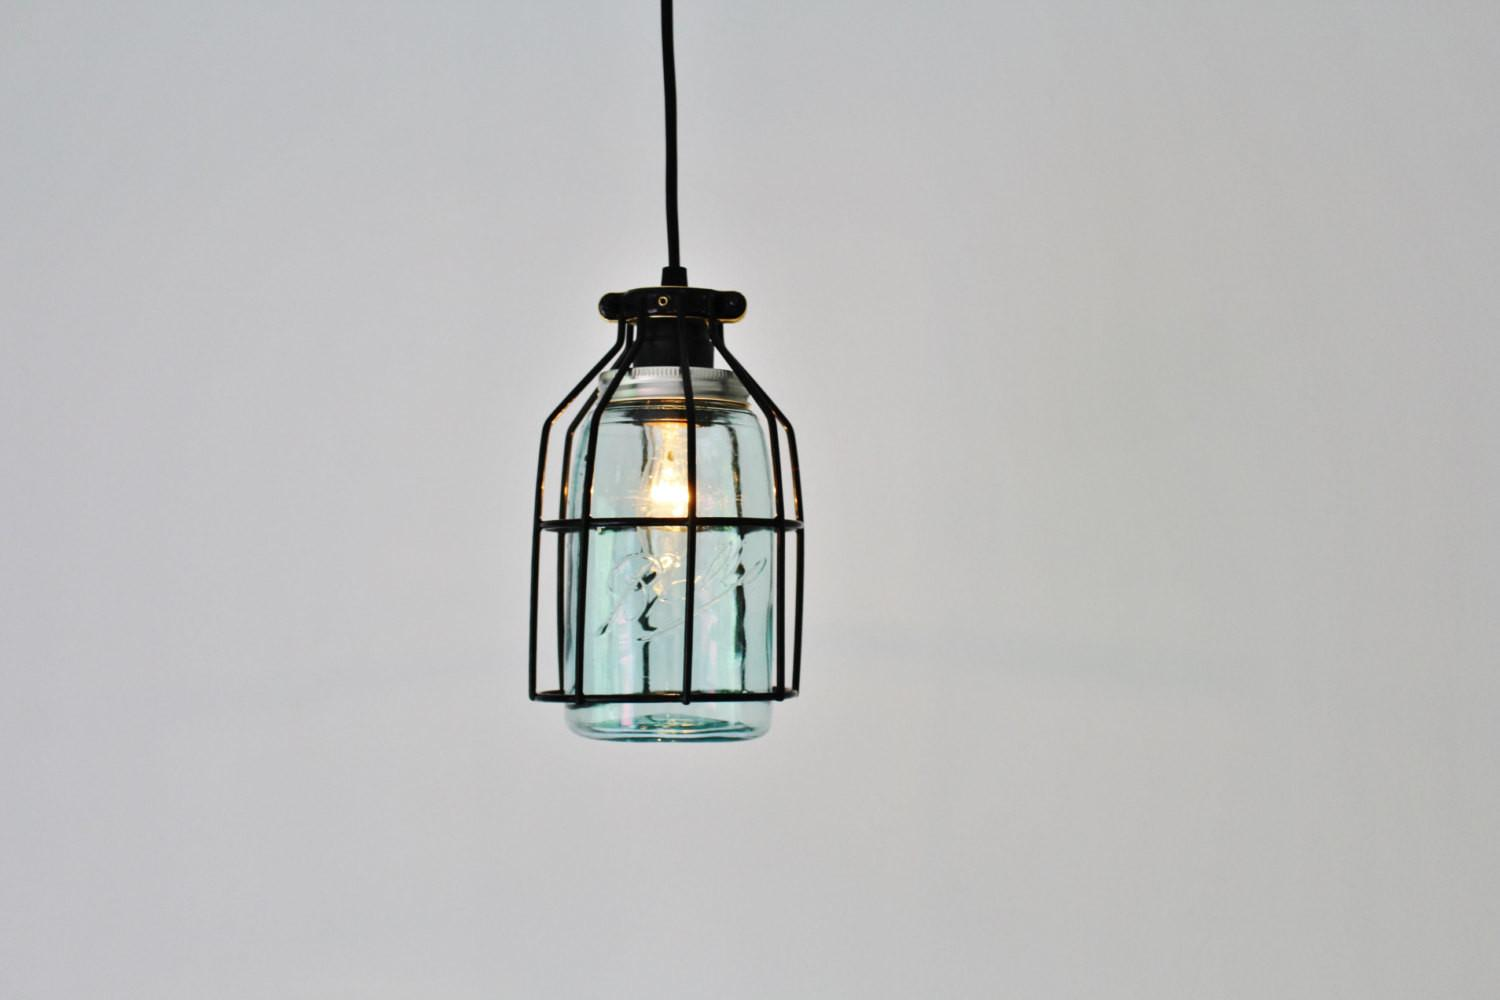 Pendant Light Black Cage Hanging Lamp Antique Early